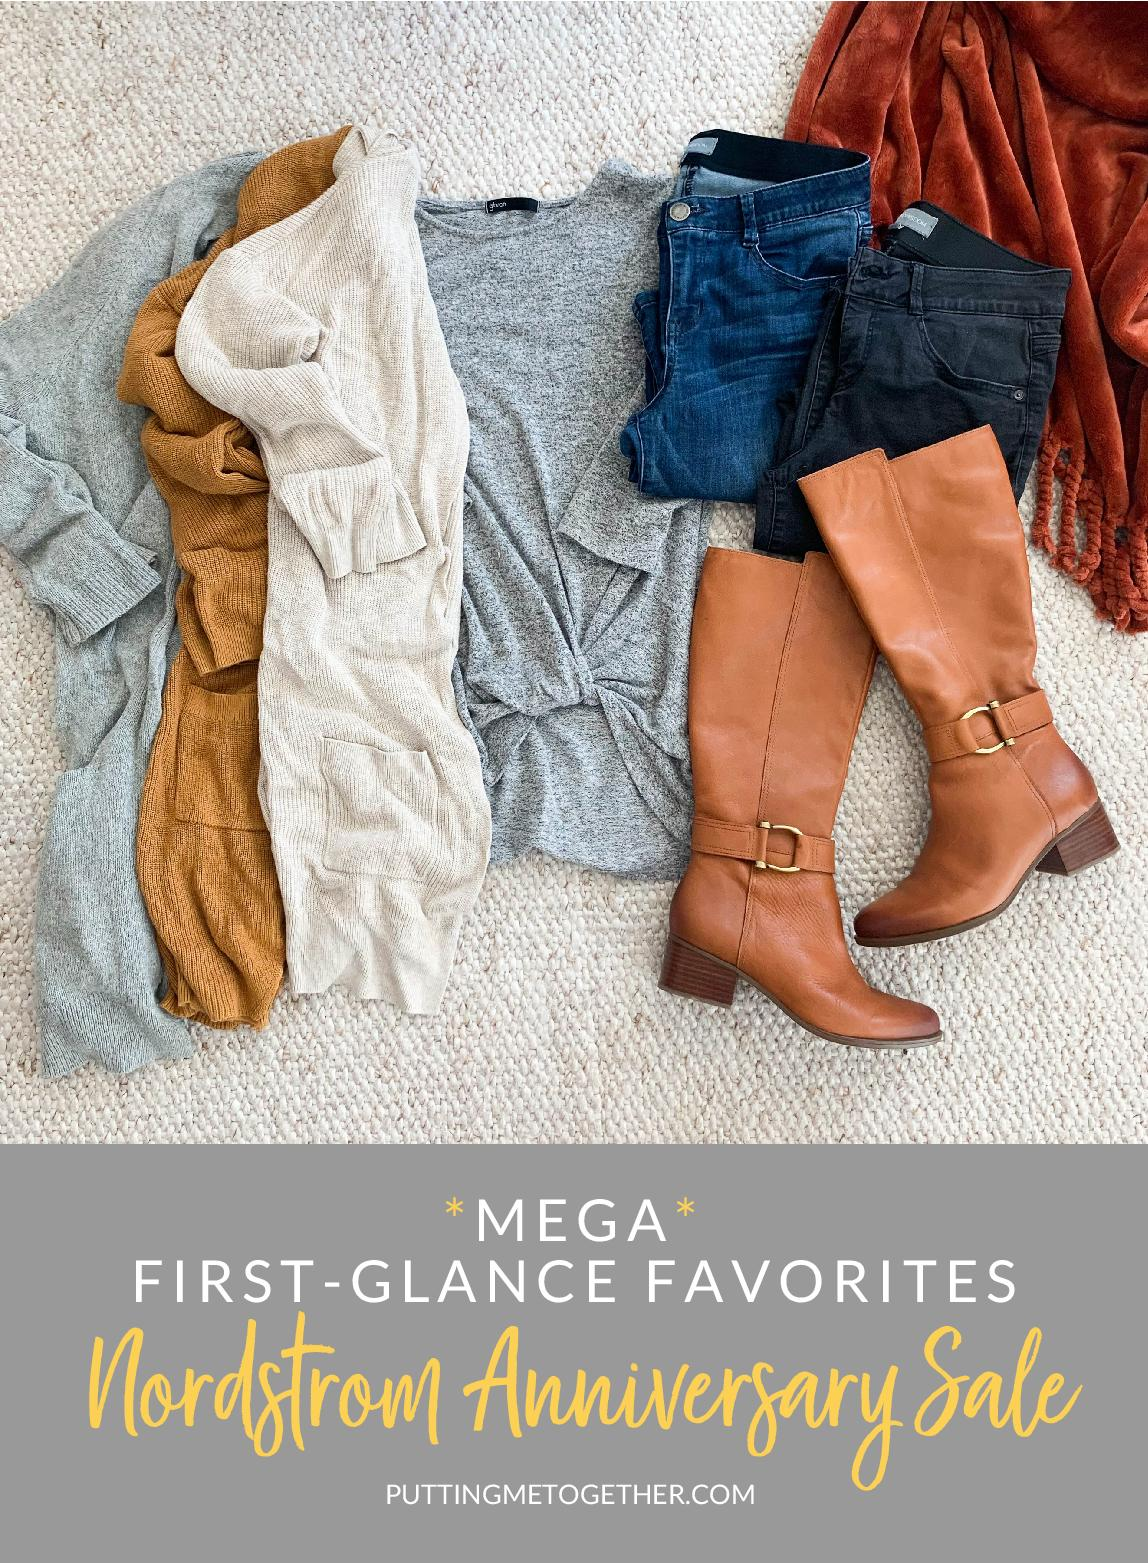 db3240ace First Glance Favorites - Nordstrom Anniversary Sale Fall Staples